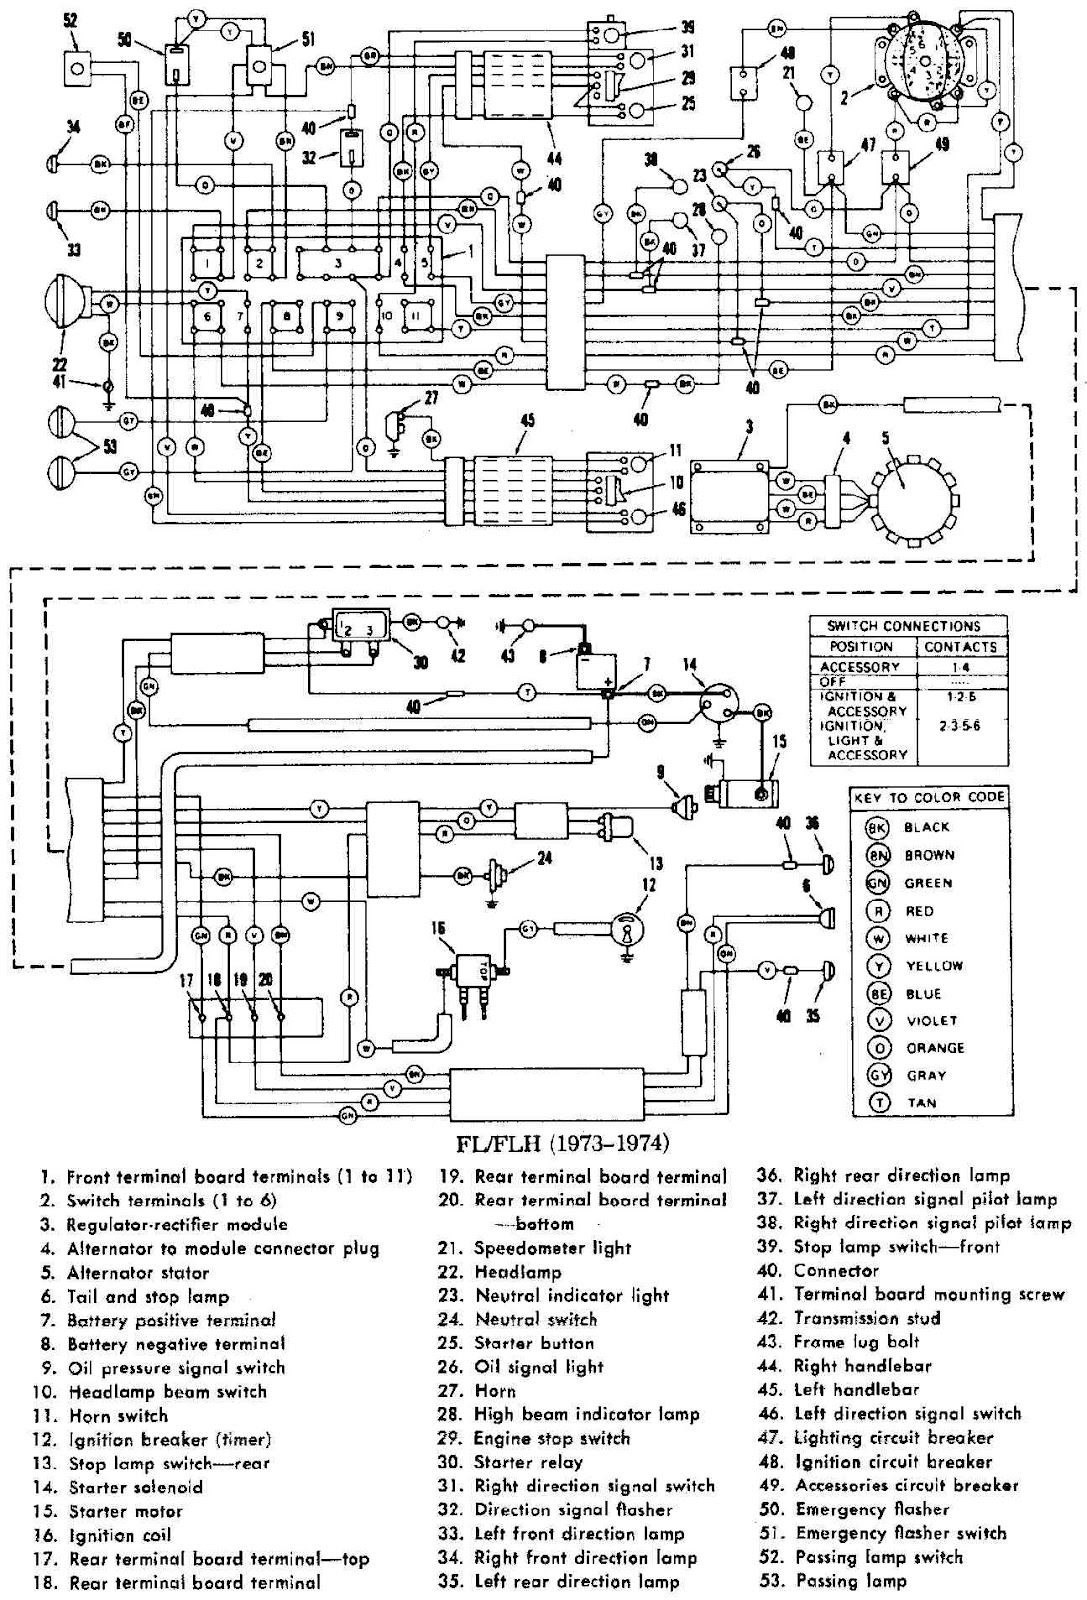 Softail 06 Harley Davidson Fl Wiring Diagram harley davidson ... on